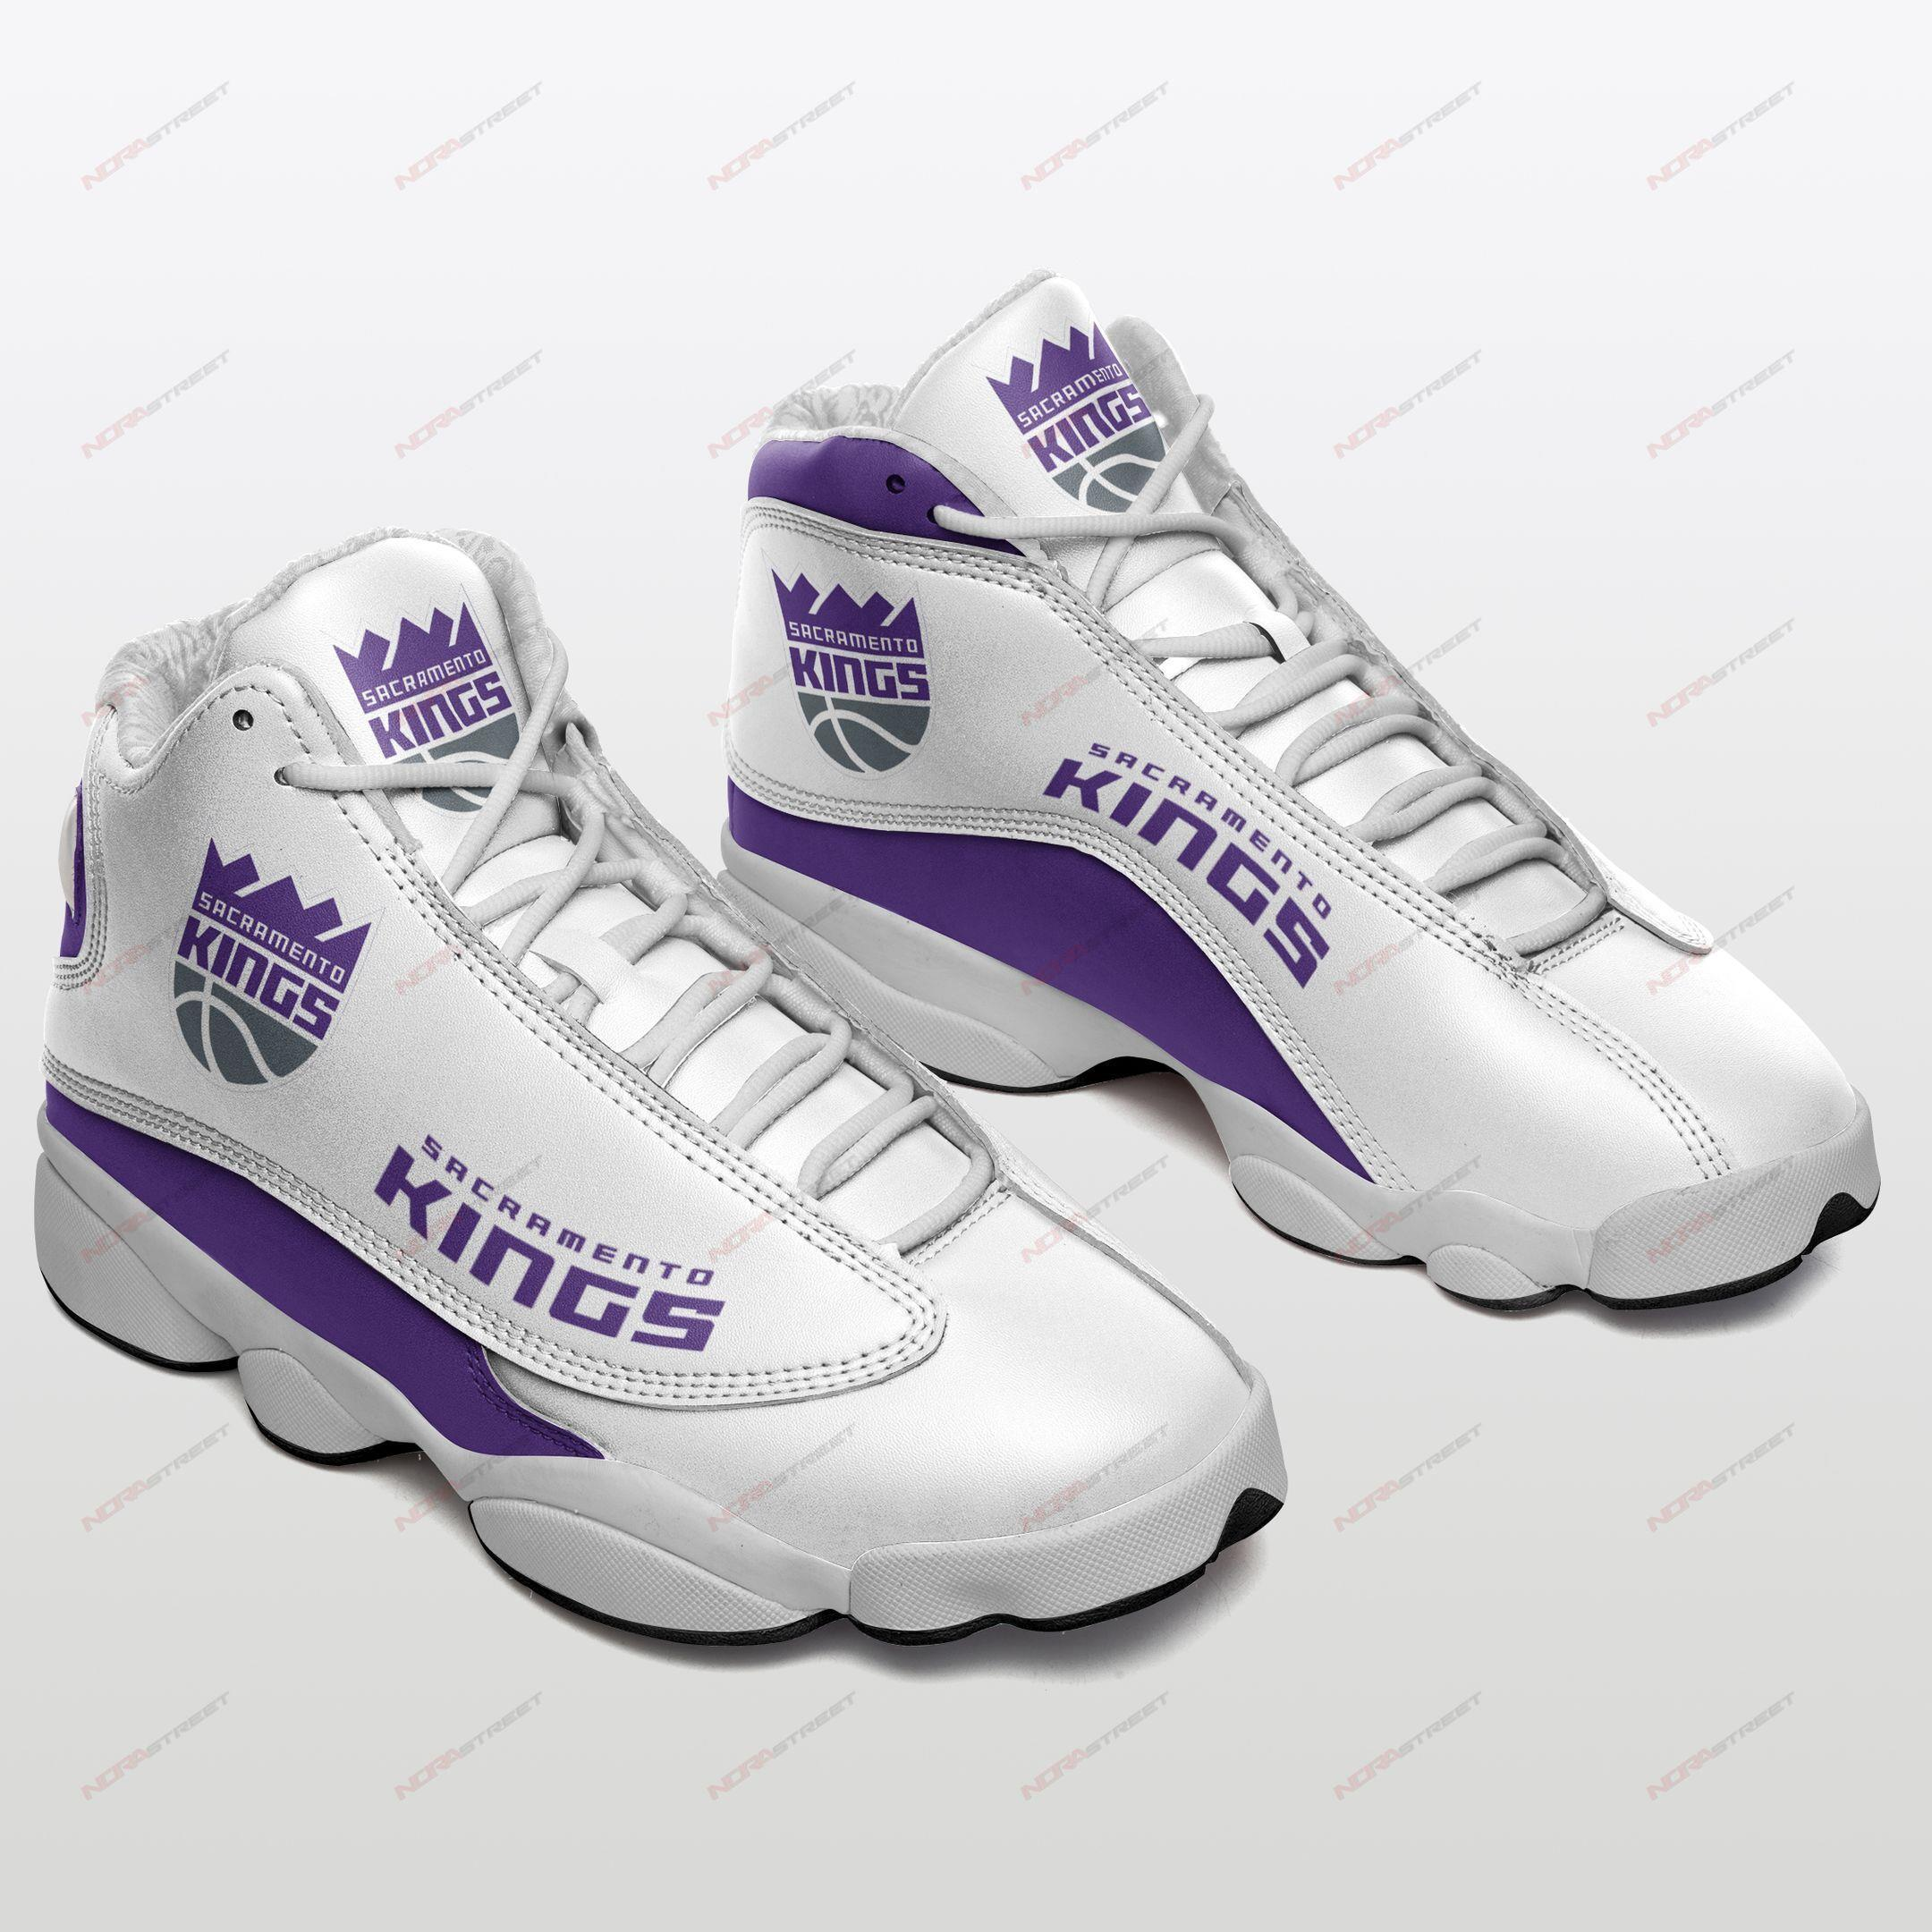 Sacramento Kings Air Jordan 13 Sneakers Sport Shoes